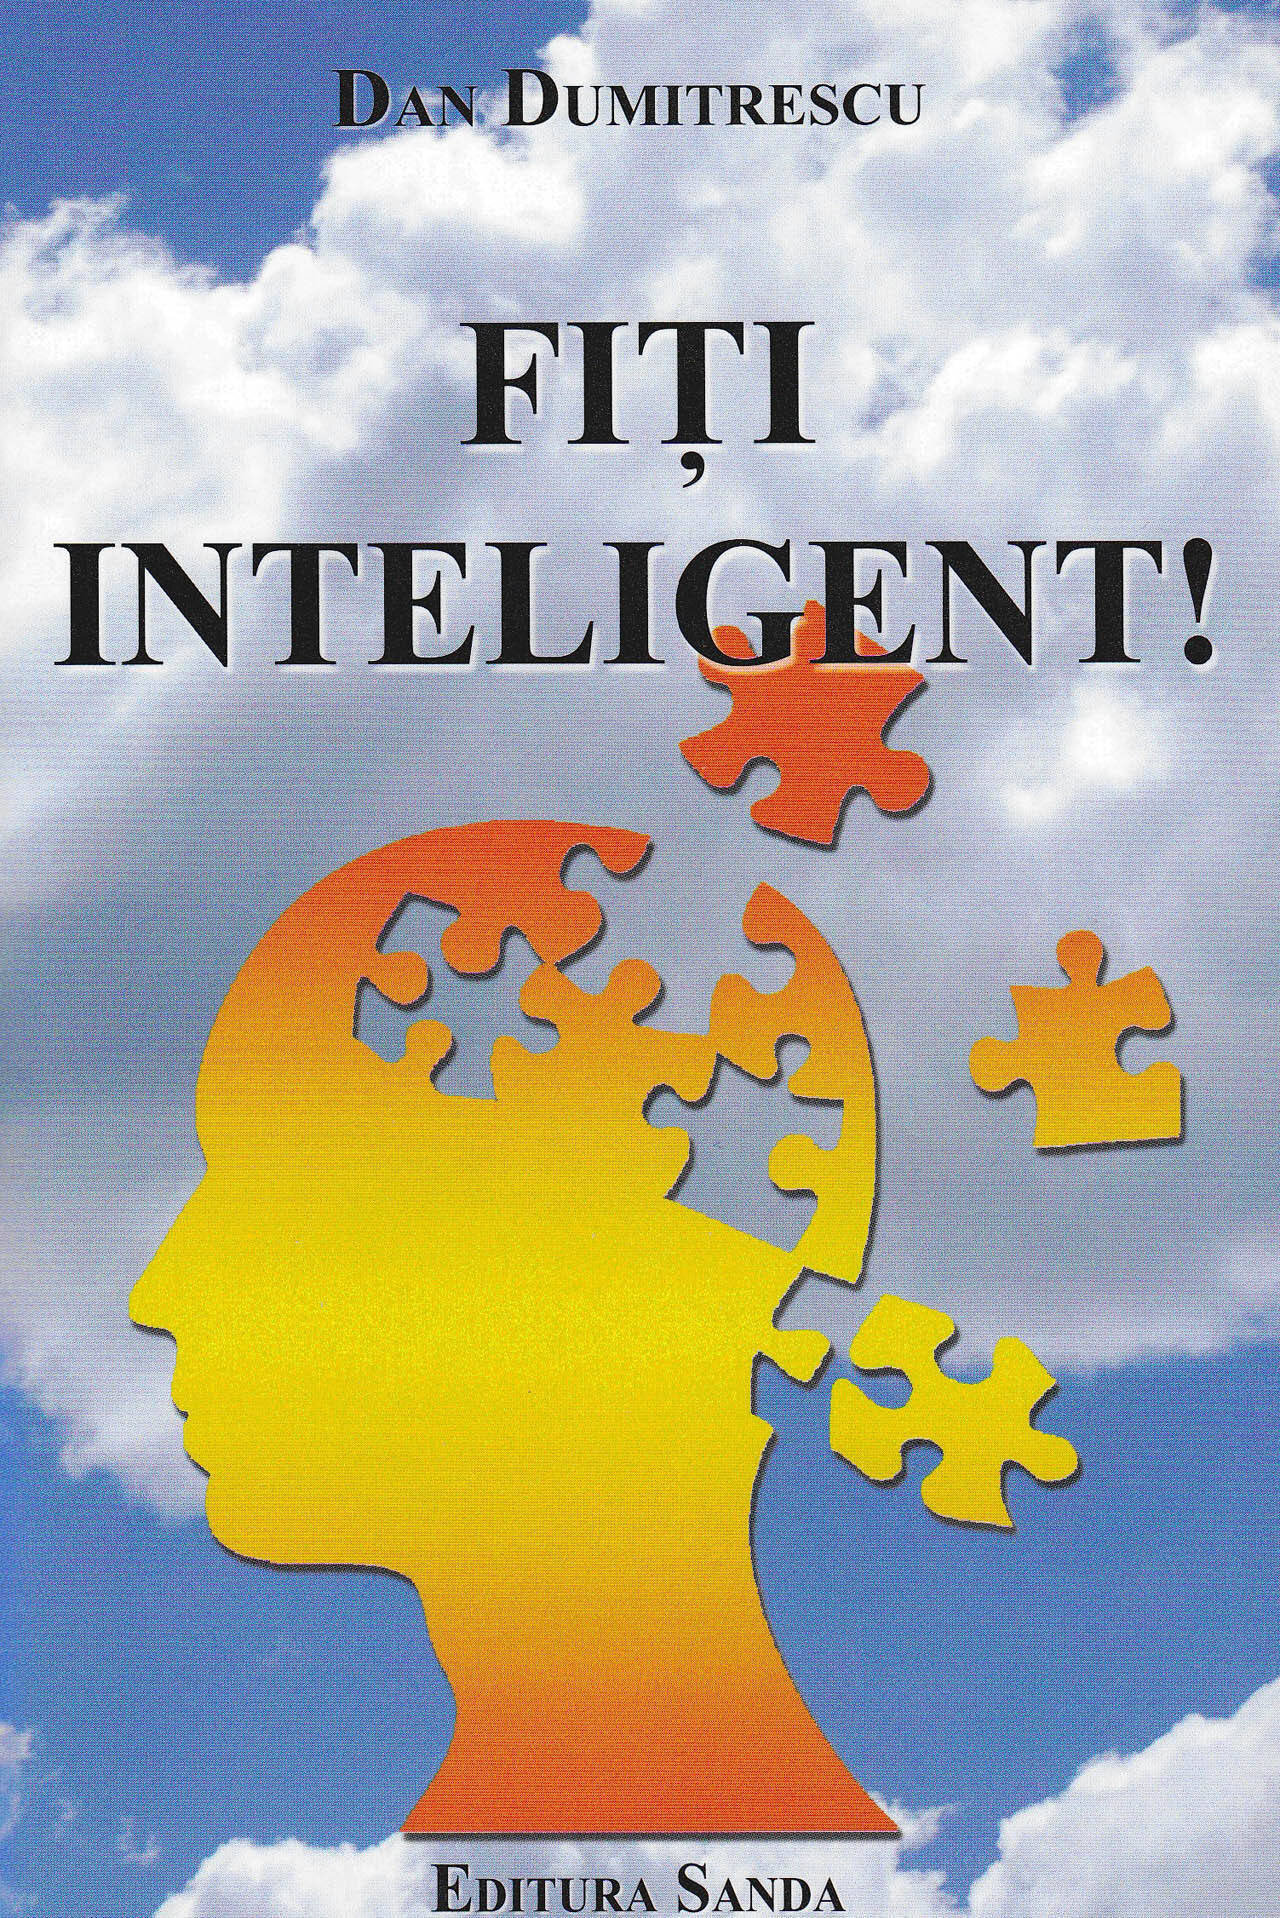 Fiti inteligent! (eBook)